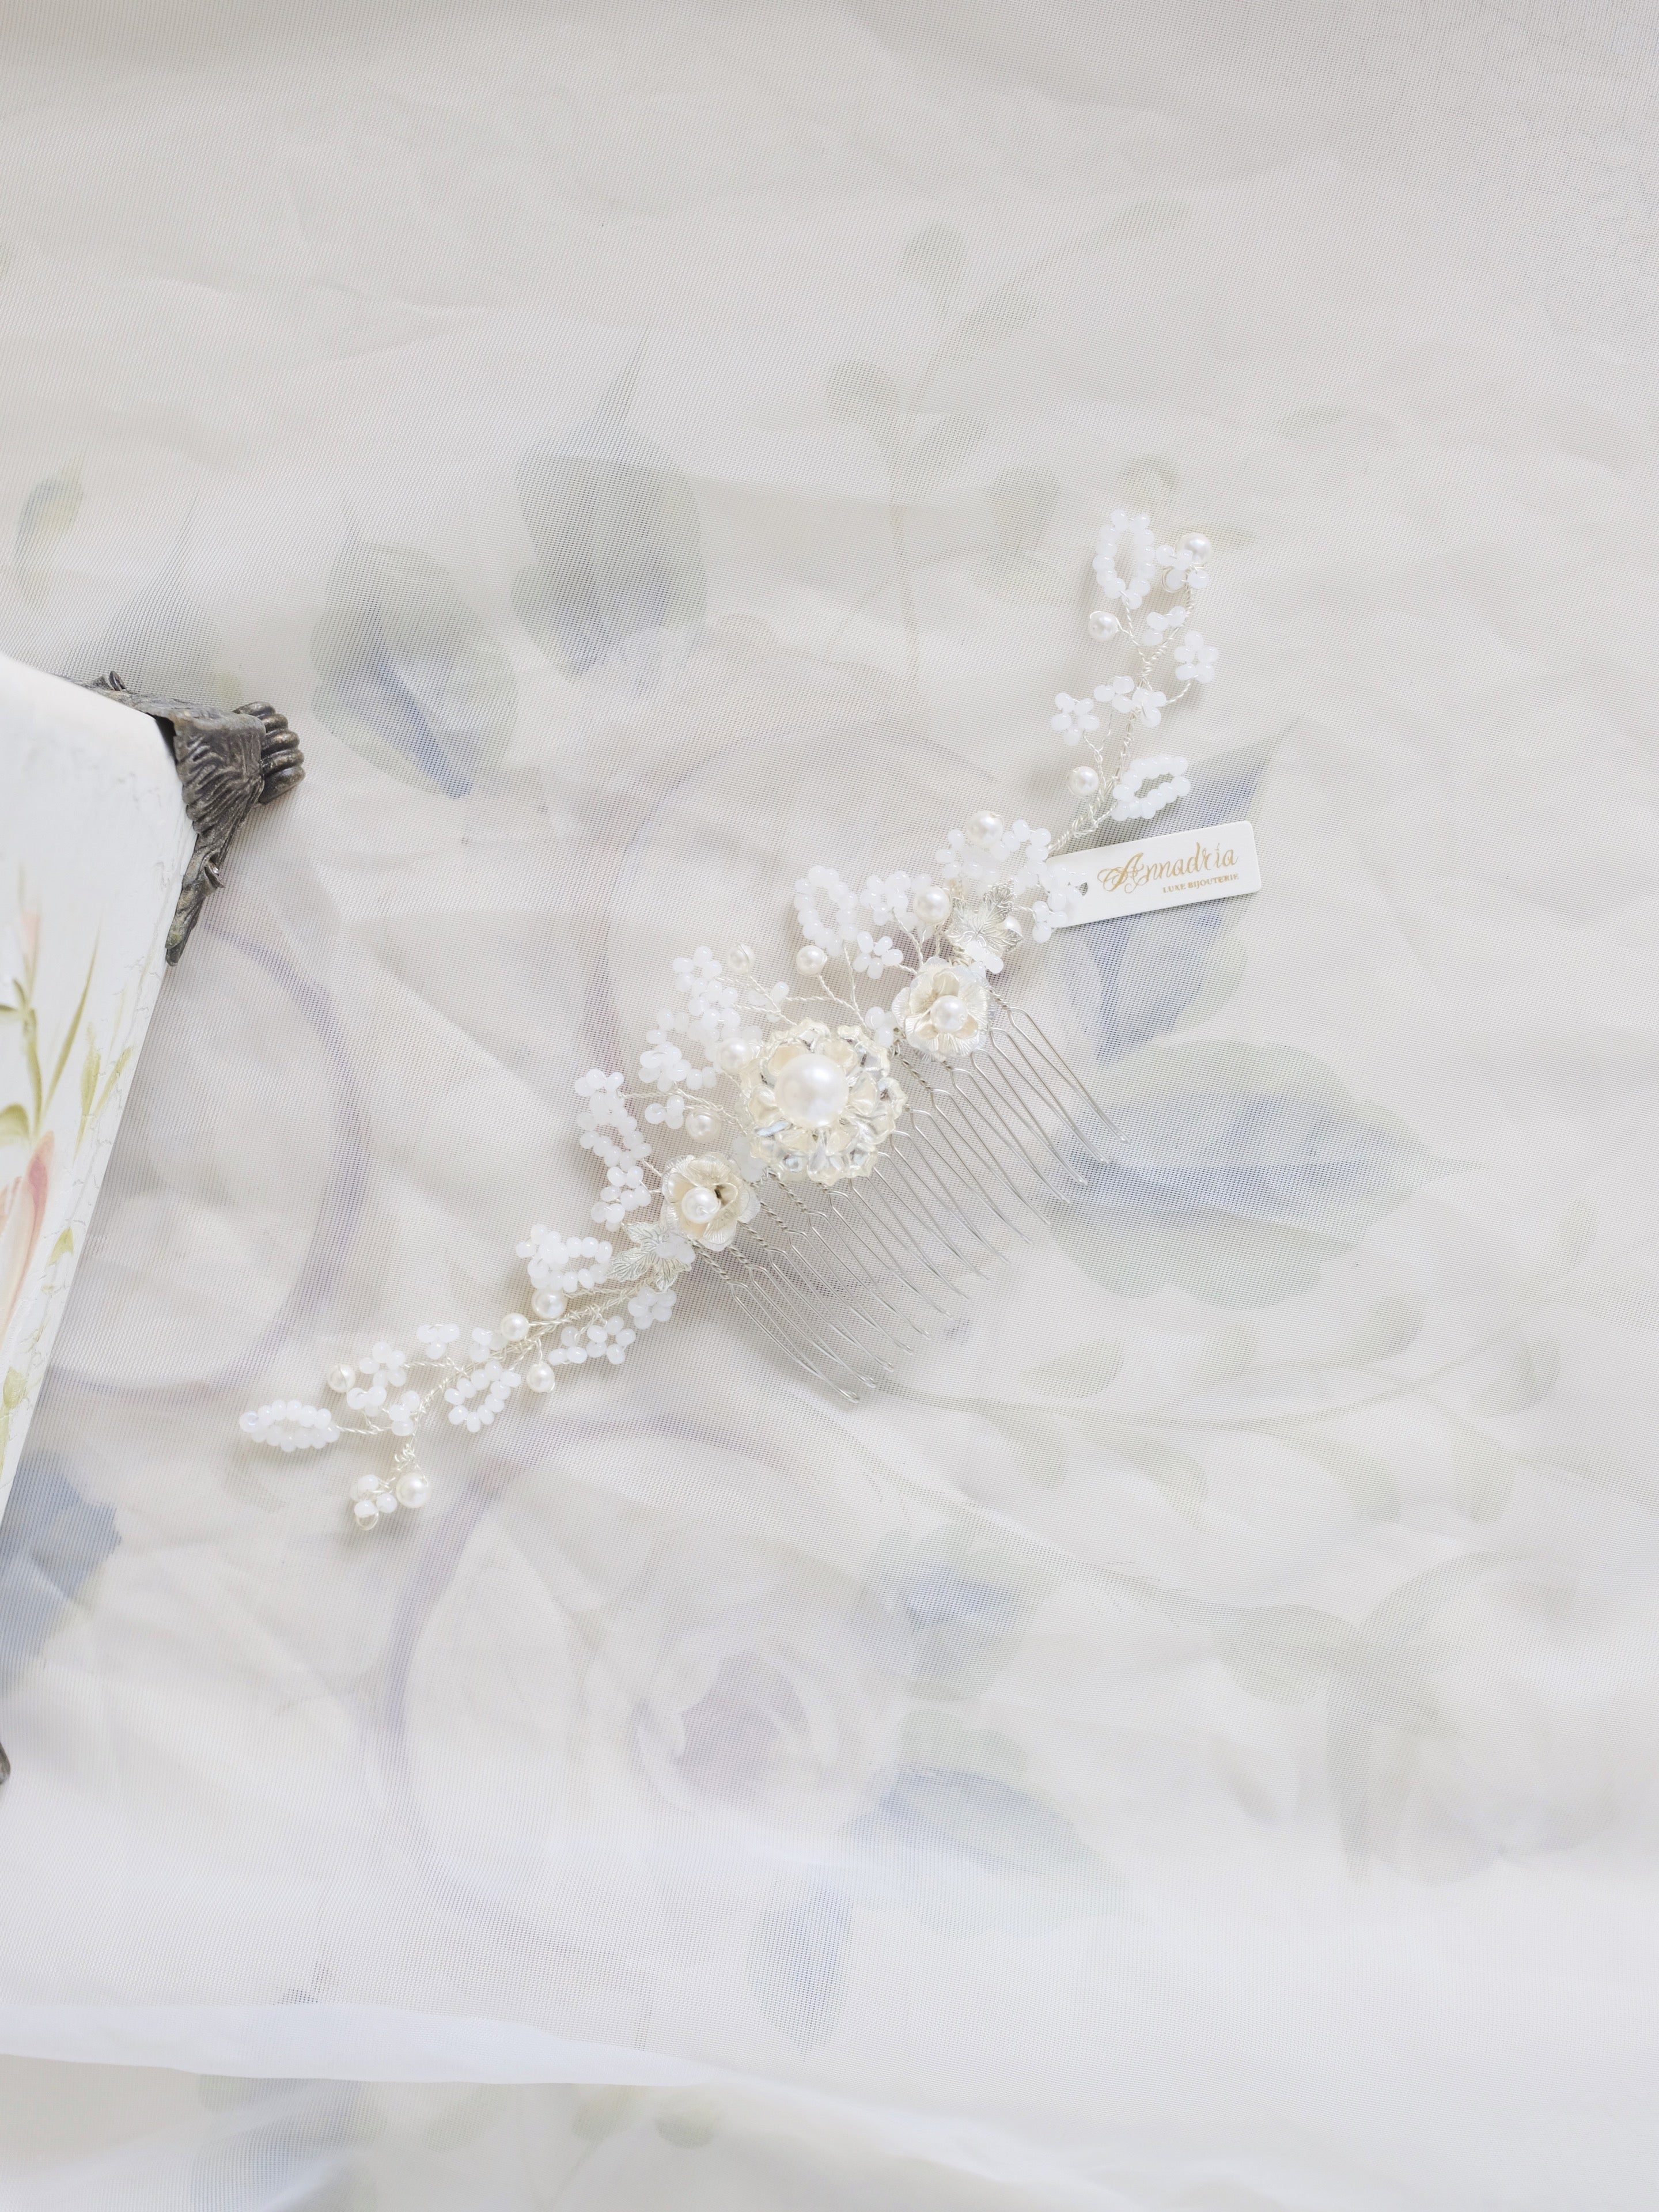 Vintage inspired bridal hair comb in white, for elegant and classic luxury weddings